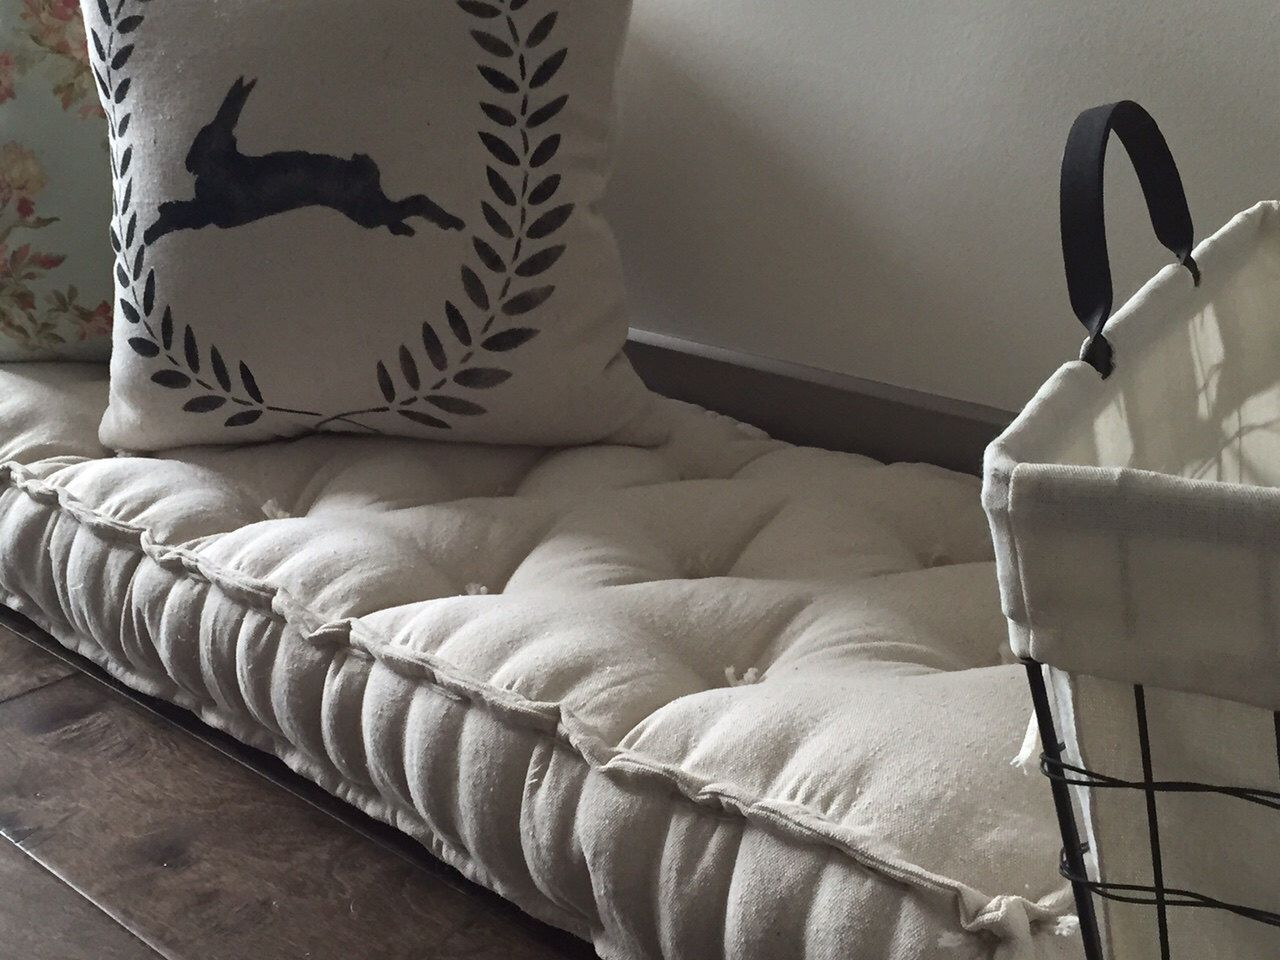 Admirable Farmhouse Floor Cushions The Linen Rabbit Soft Gmtry Best Dining Table And Chair Ideas Images Gmtryco